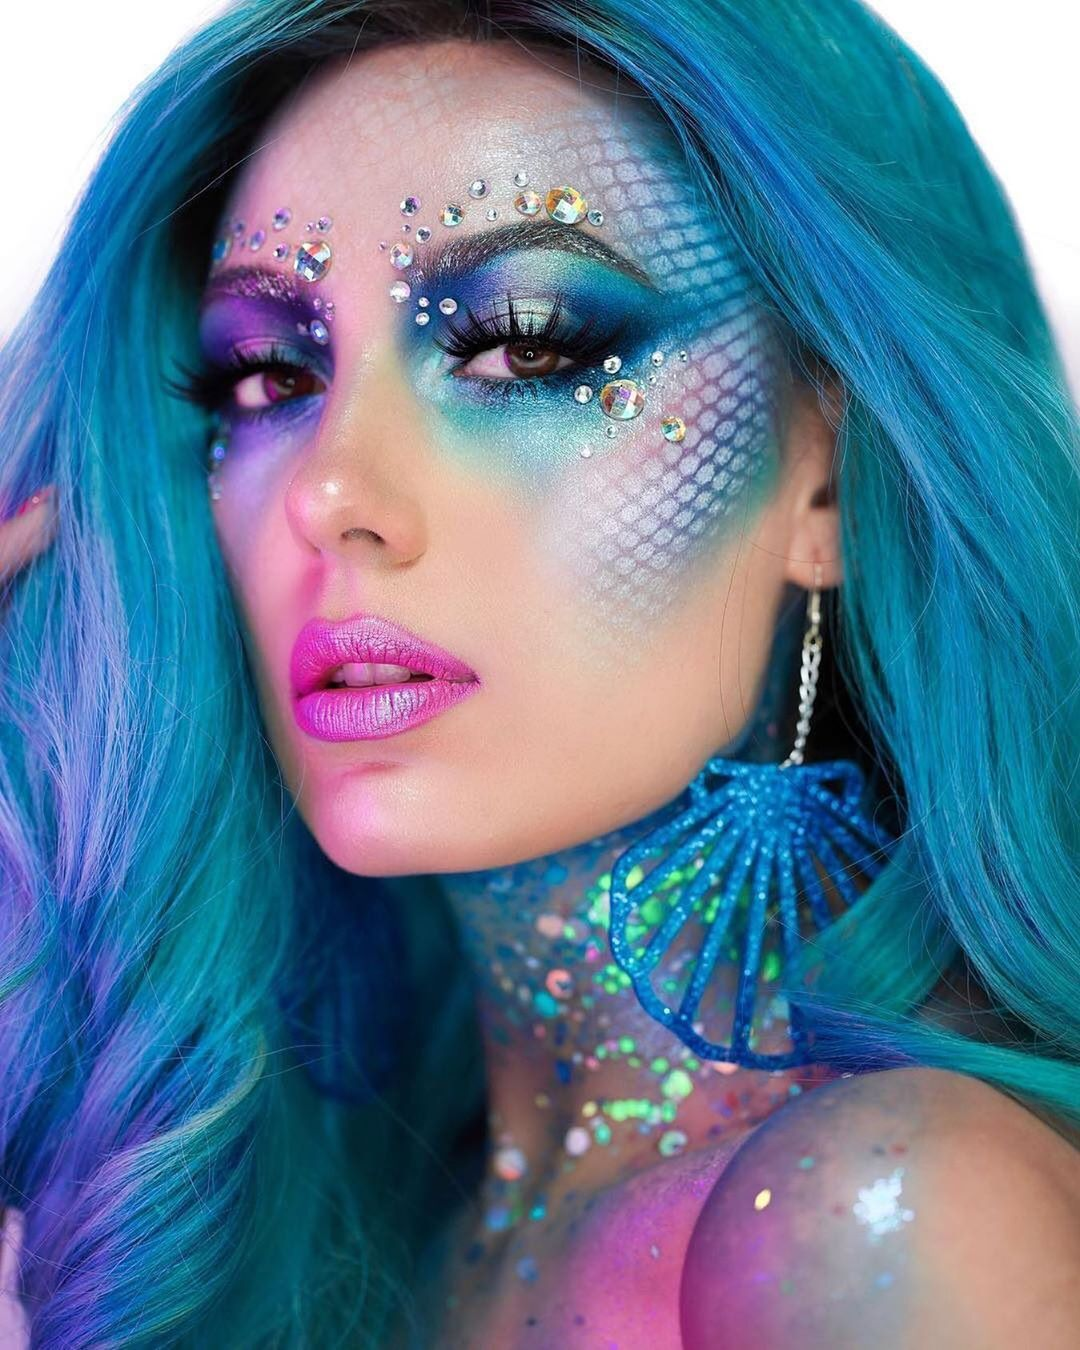 """Lime Crime on Instagram """"MERMAIDS ARE REAL! 😍🧜🏼♀️"""